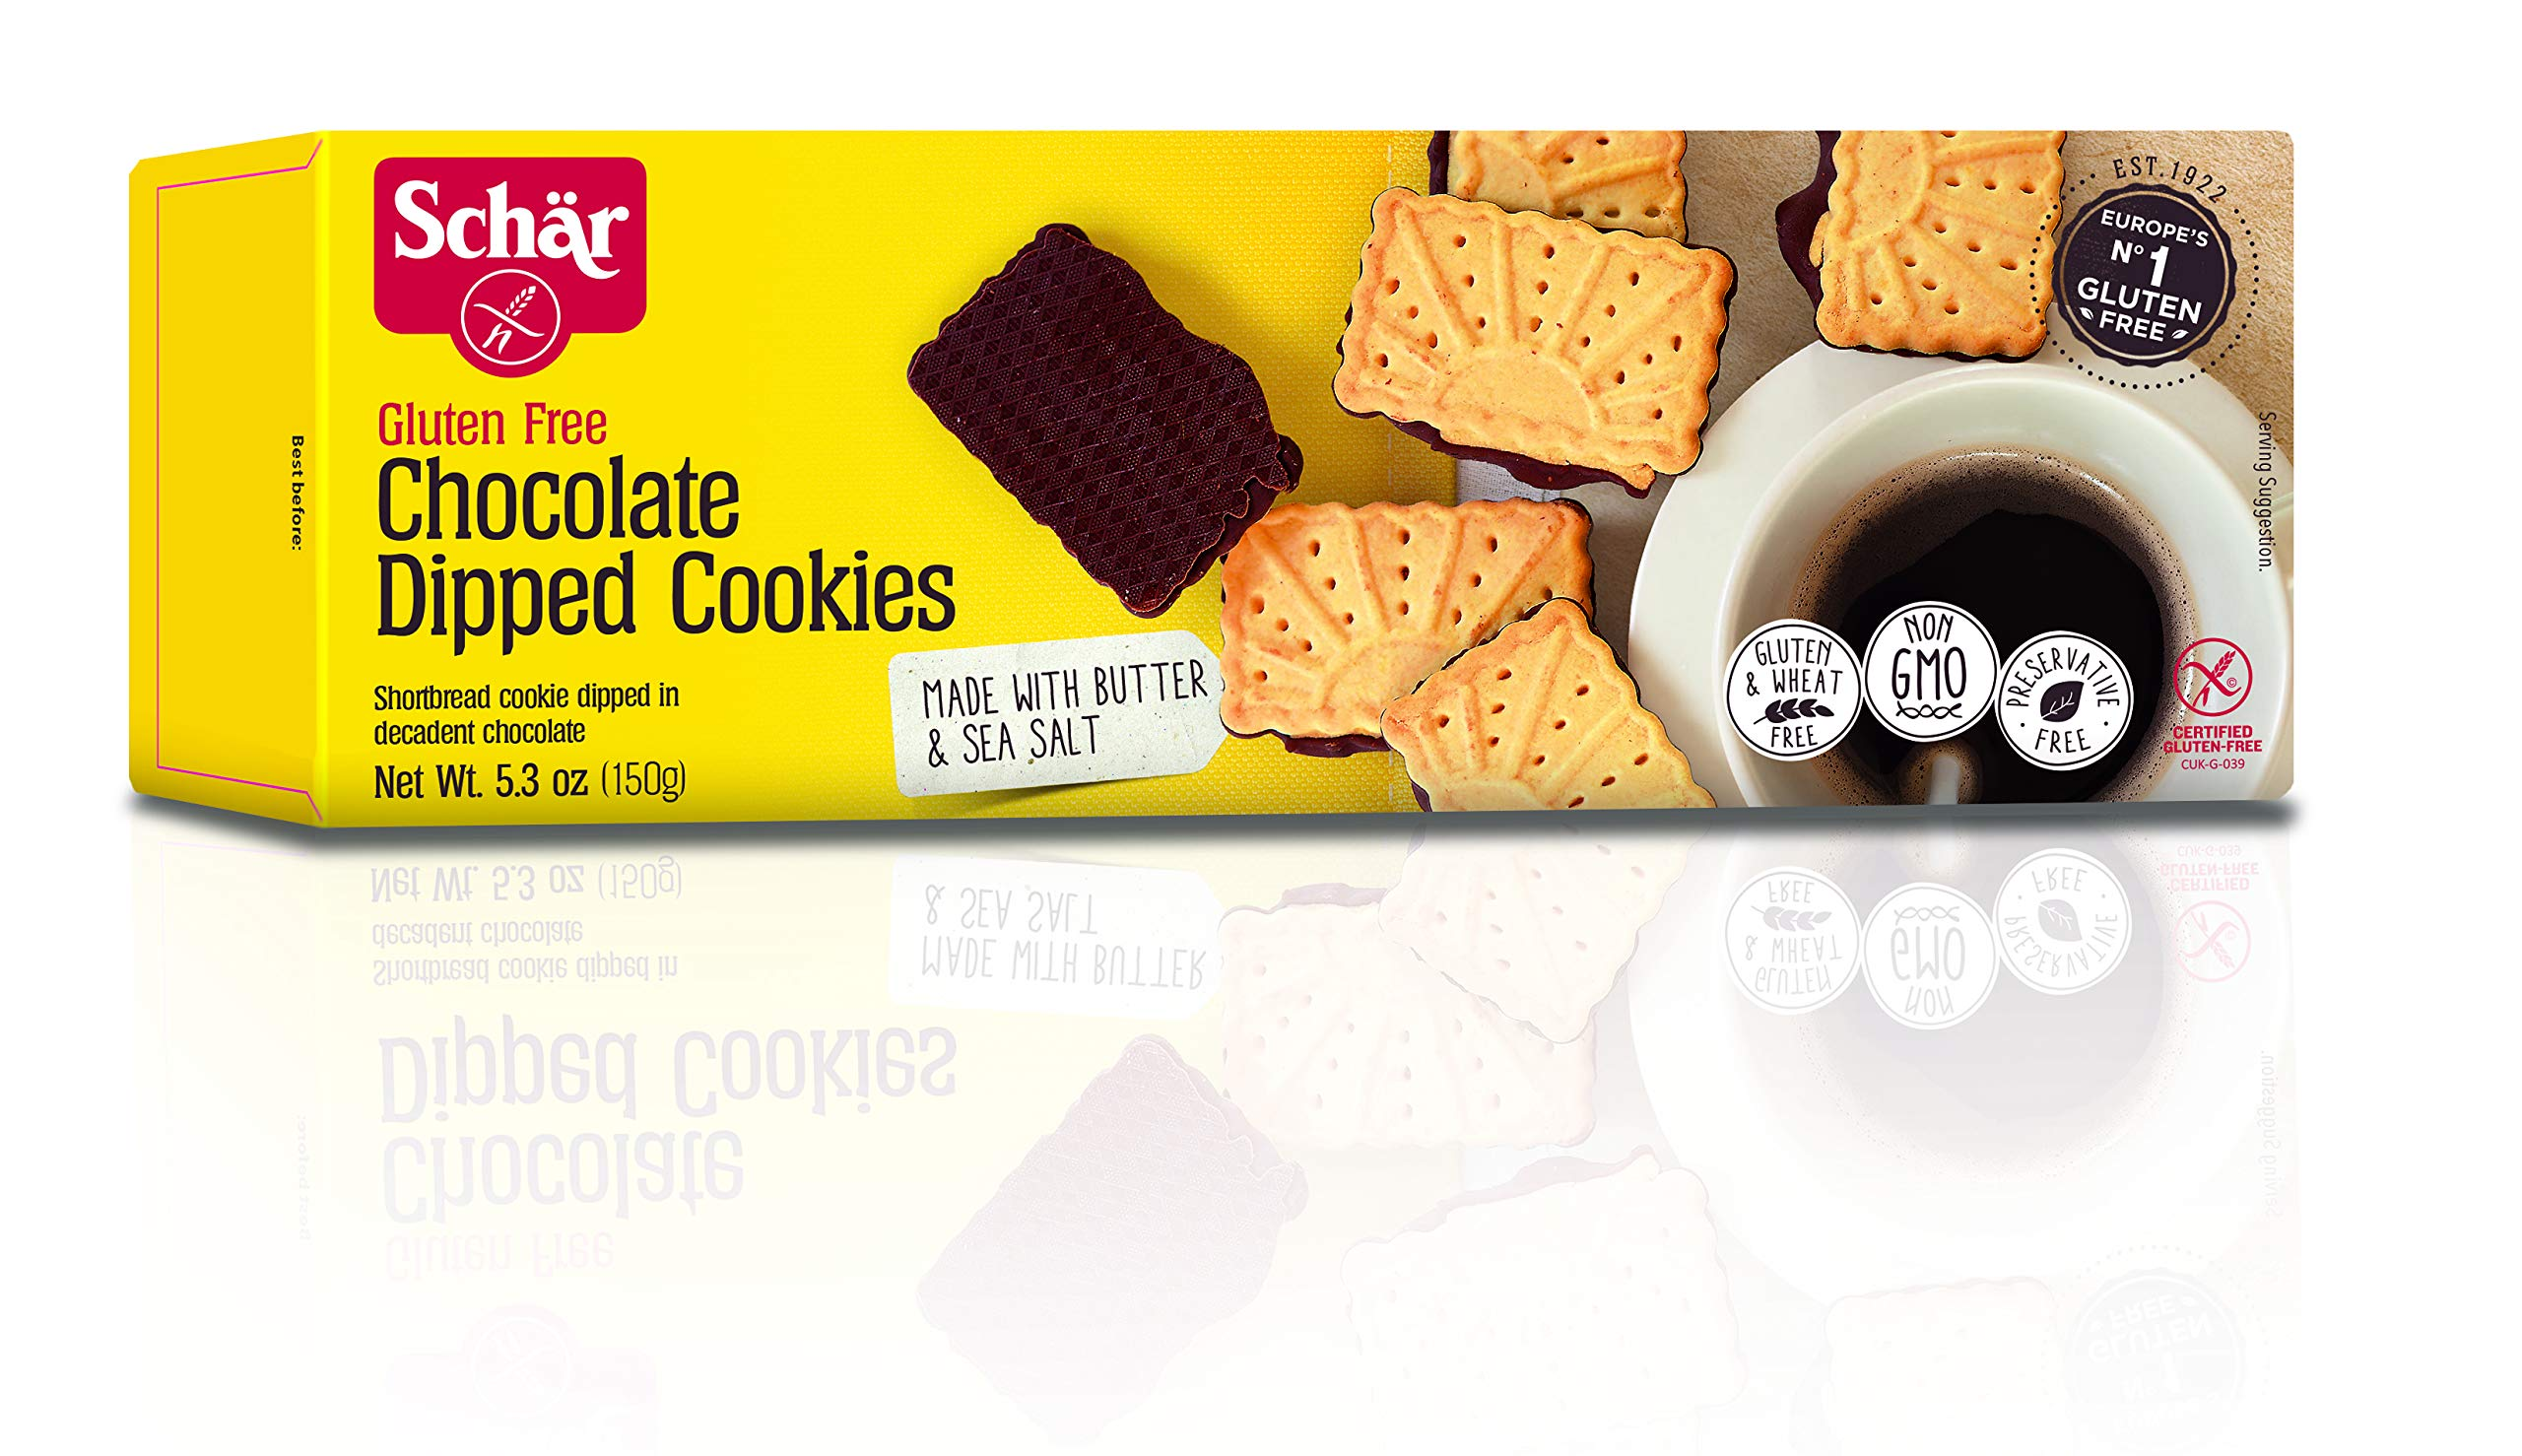 Schär Gluten Free Chocolate Dipped Cookies, 5.3 oz. Box, 4-Pack by Schar